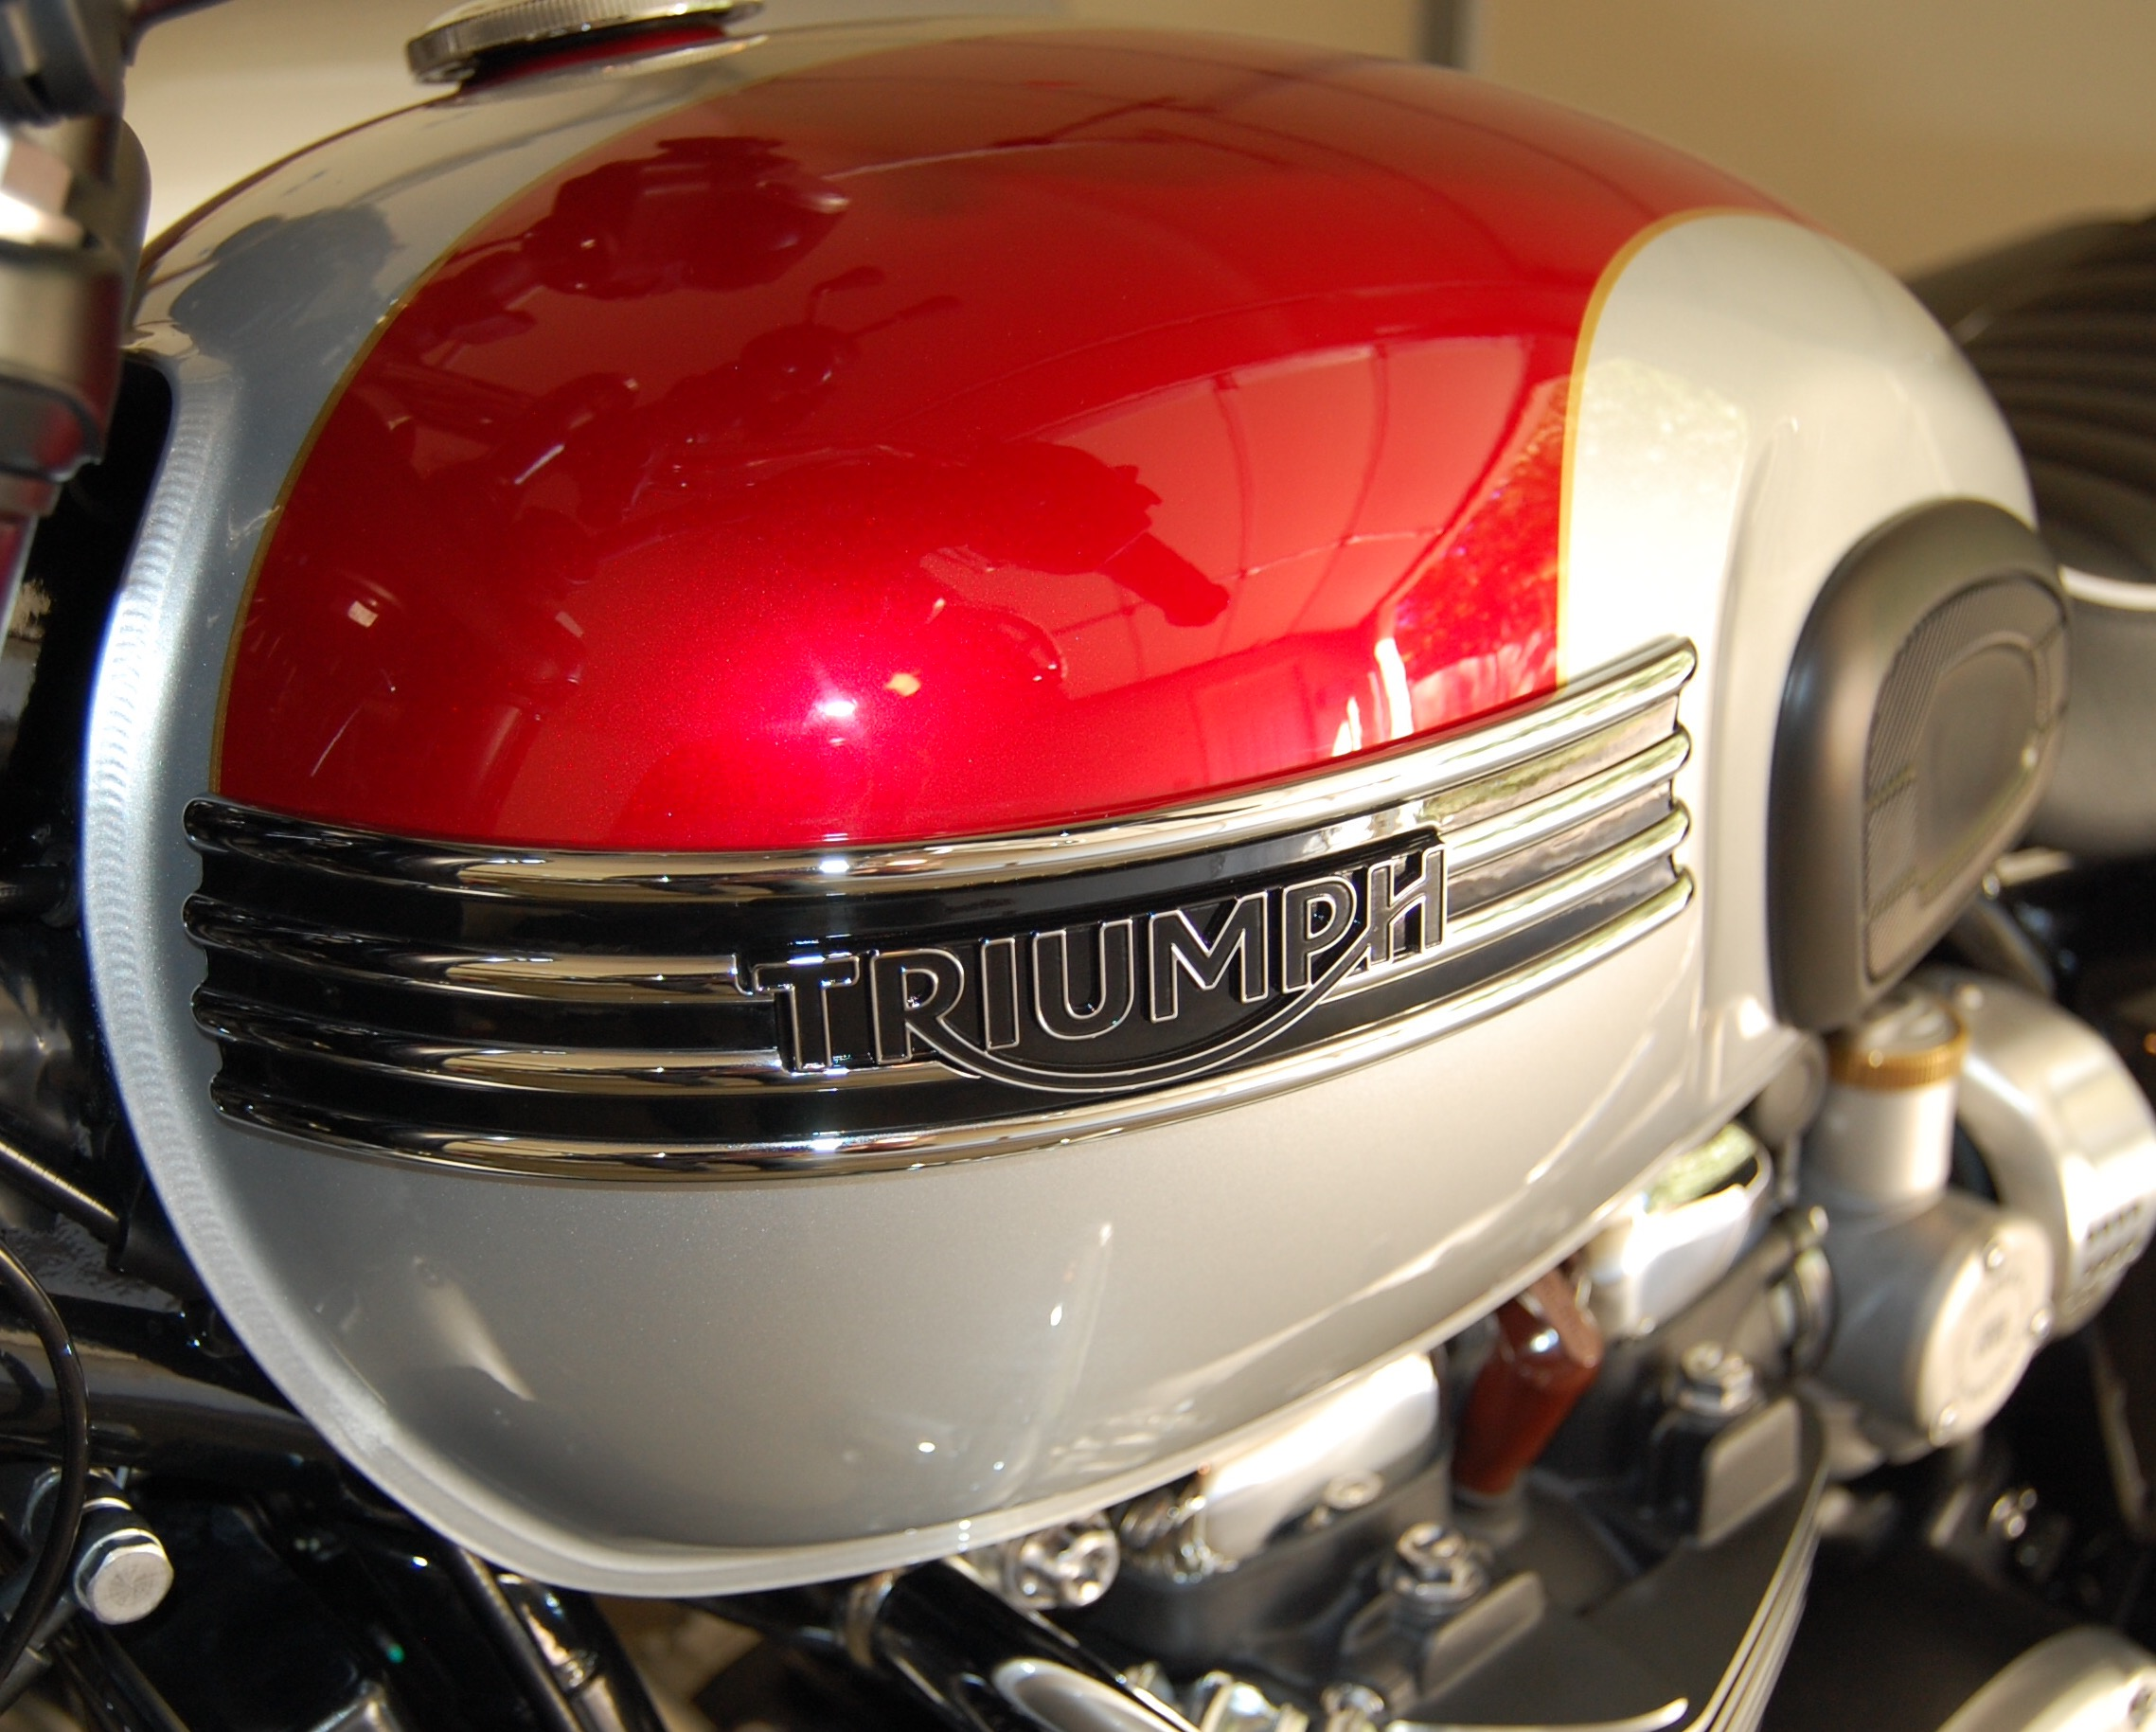 T120 Tank Badge Removal And Swap Page 2 Triumph Forum